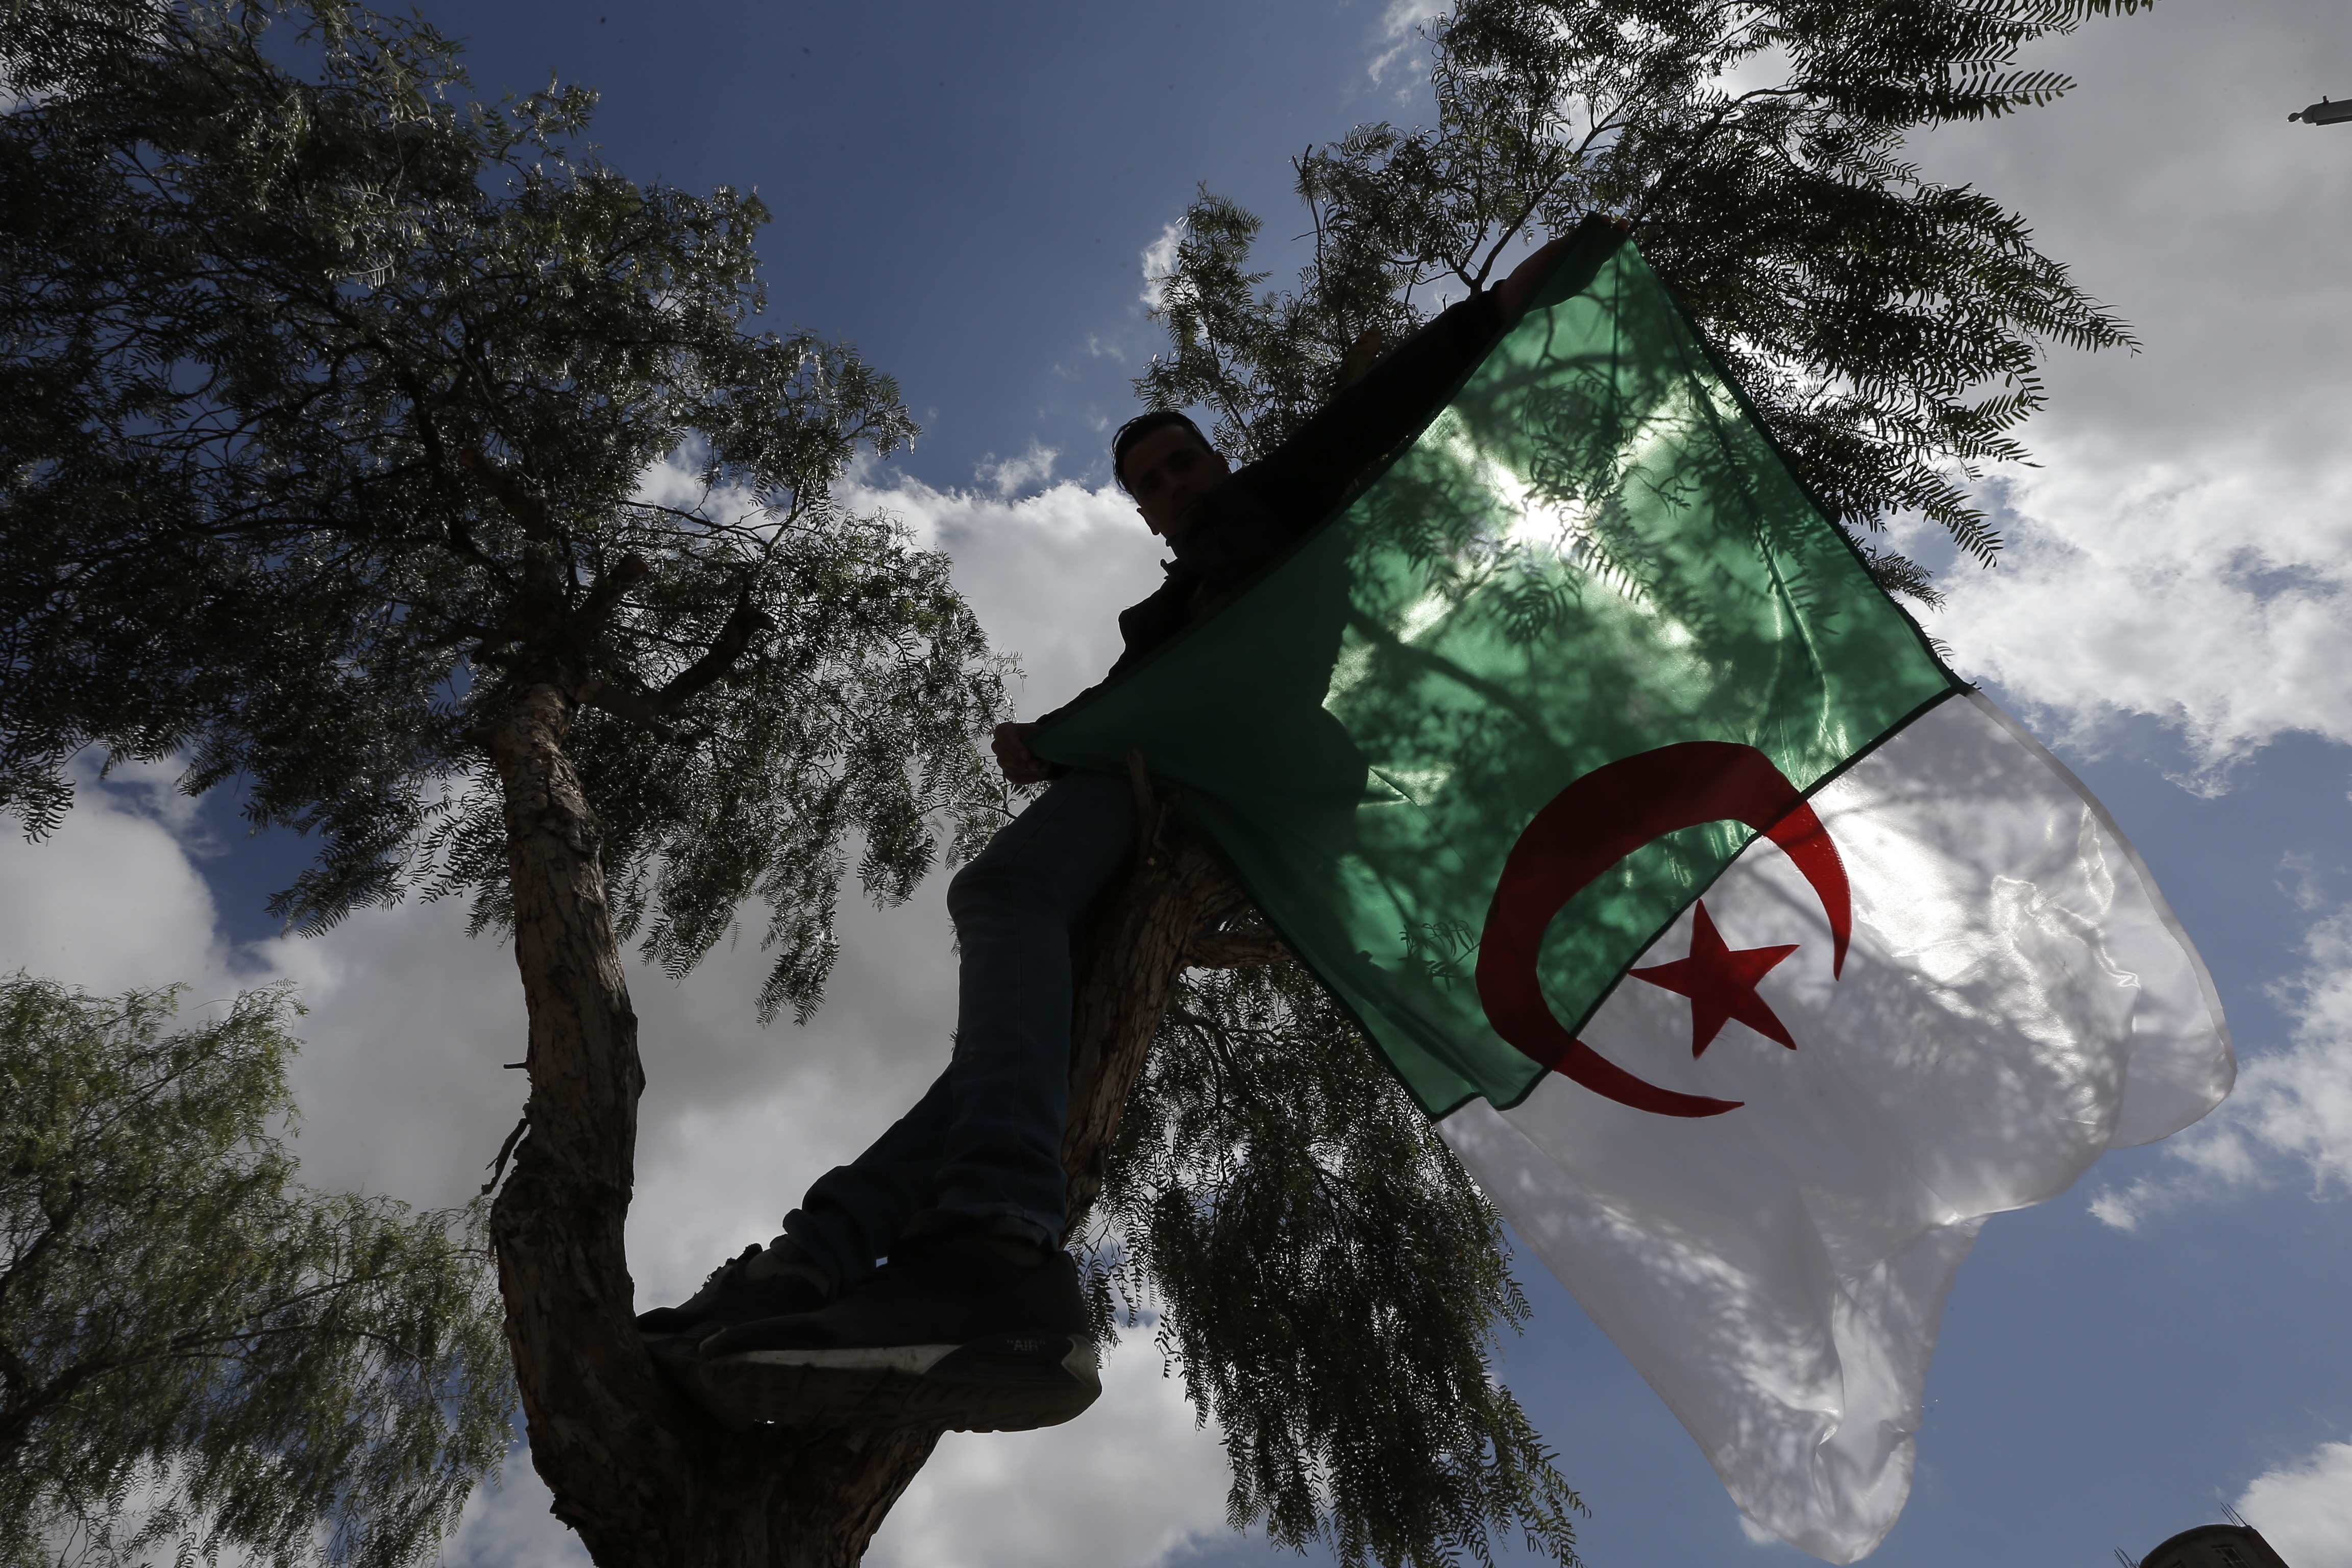 A demonstrator holds an Algerian flag during a protest in Bordj Bou Arreridj, east of Algiers, Friday, April 26, 2019. Algerians are massing for a 10th week of protests against their country's ruling class, calling for the ex-president's brother to be put on trial. (AP Photo/Toufik Doudou)